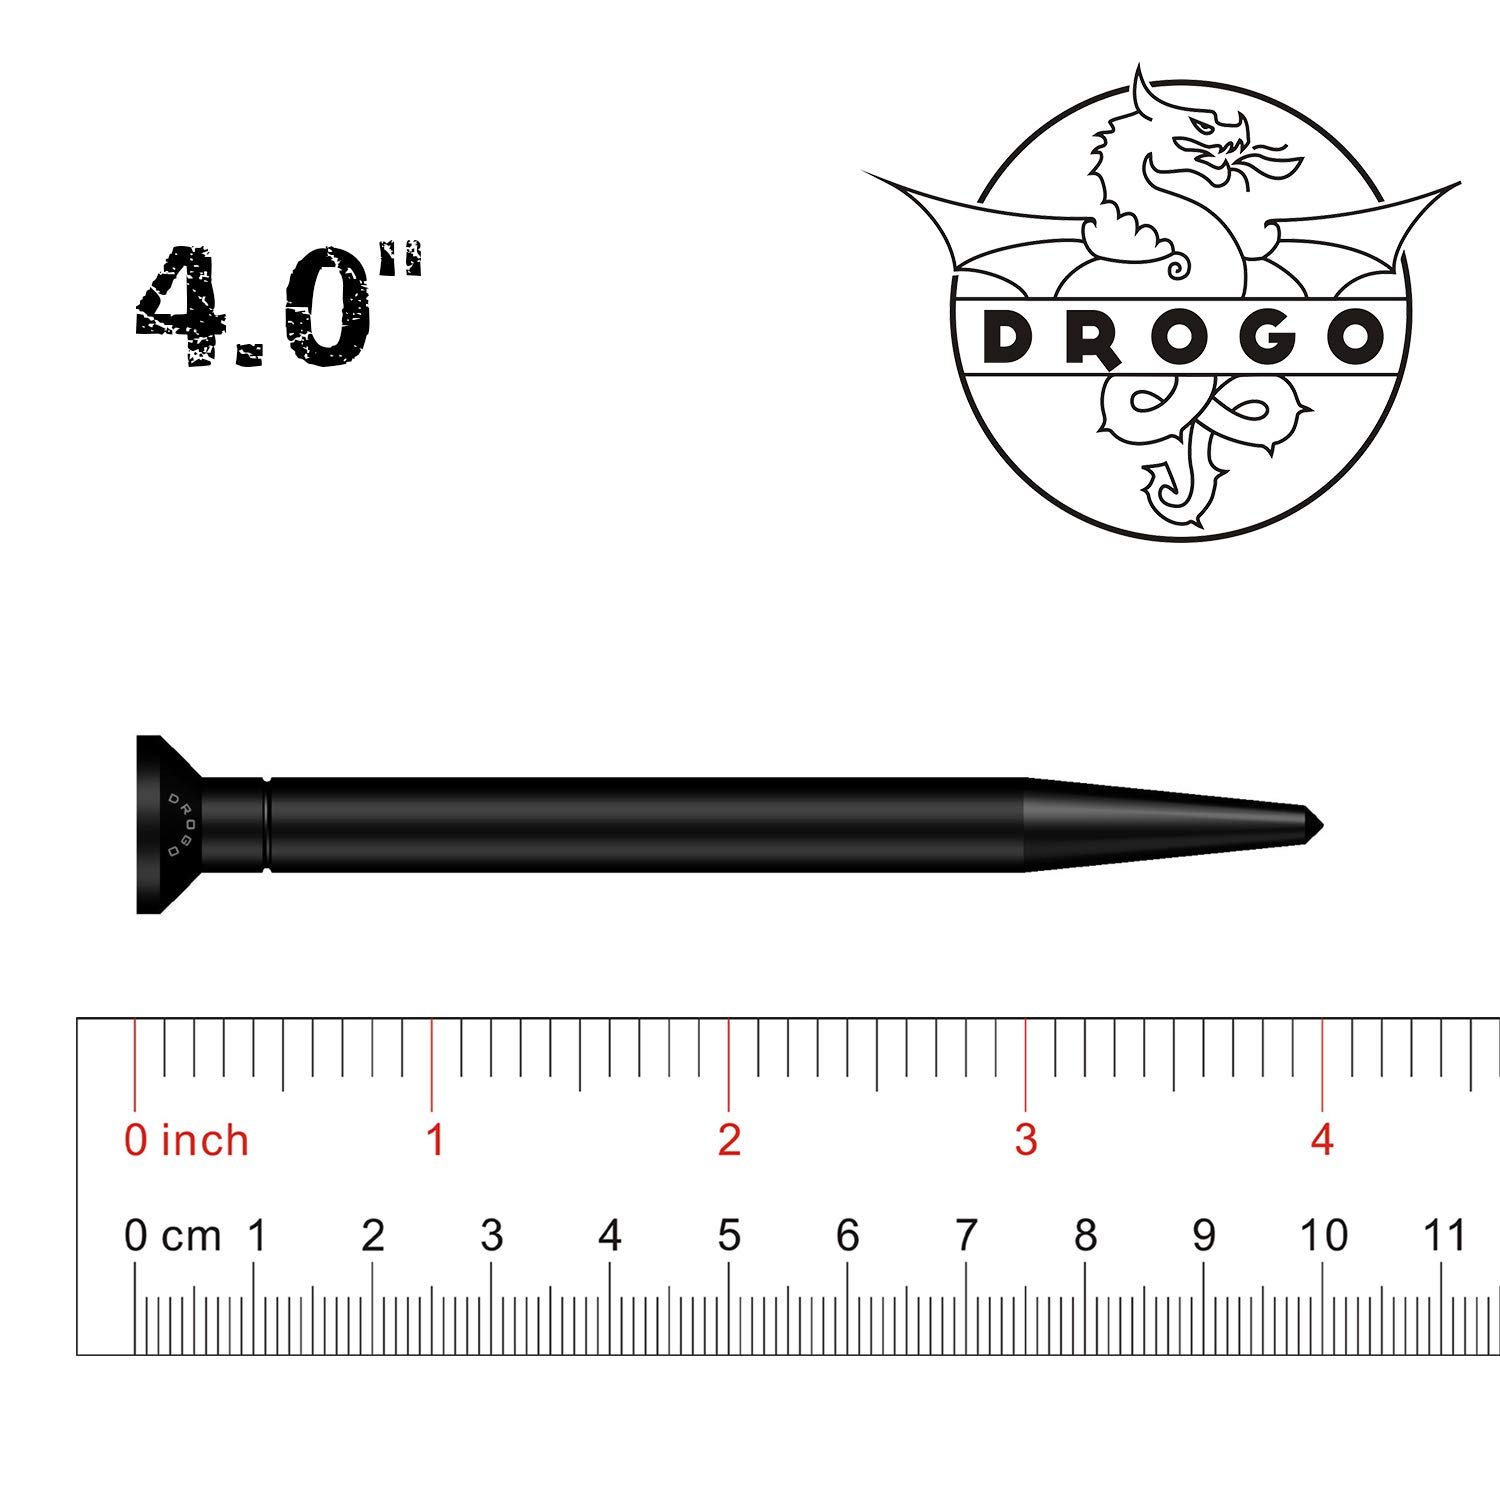 Stealth Black DROGO 4 SnagX Replacement Antenna for Dodge RAM 1500 2012-2018 FM//AM Reception Enhanced Tough Material Creative Design